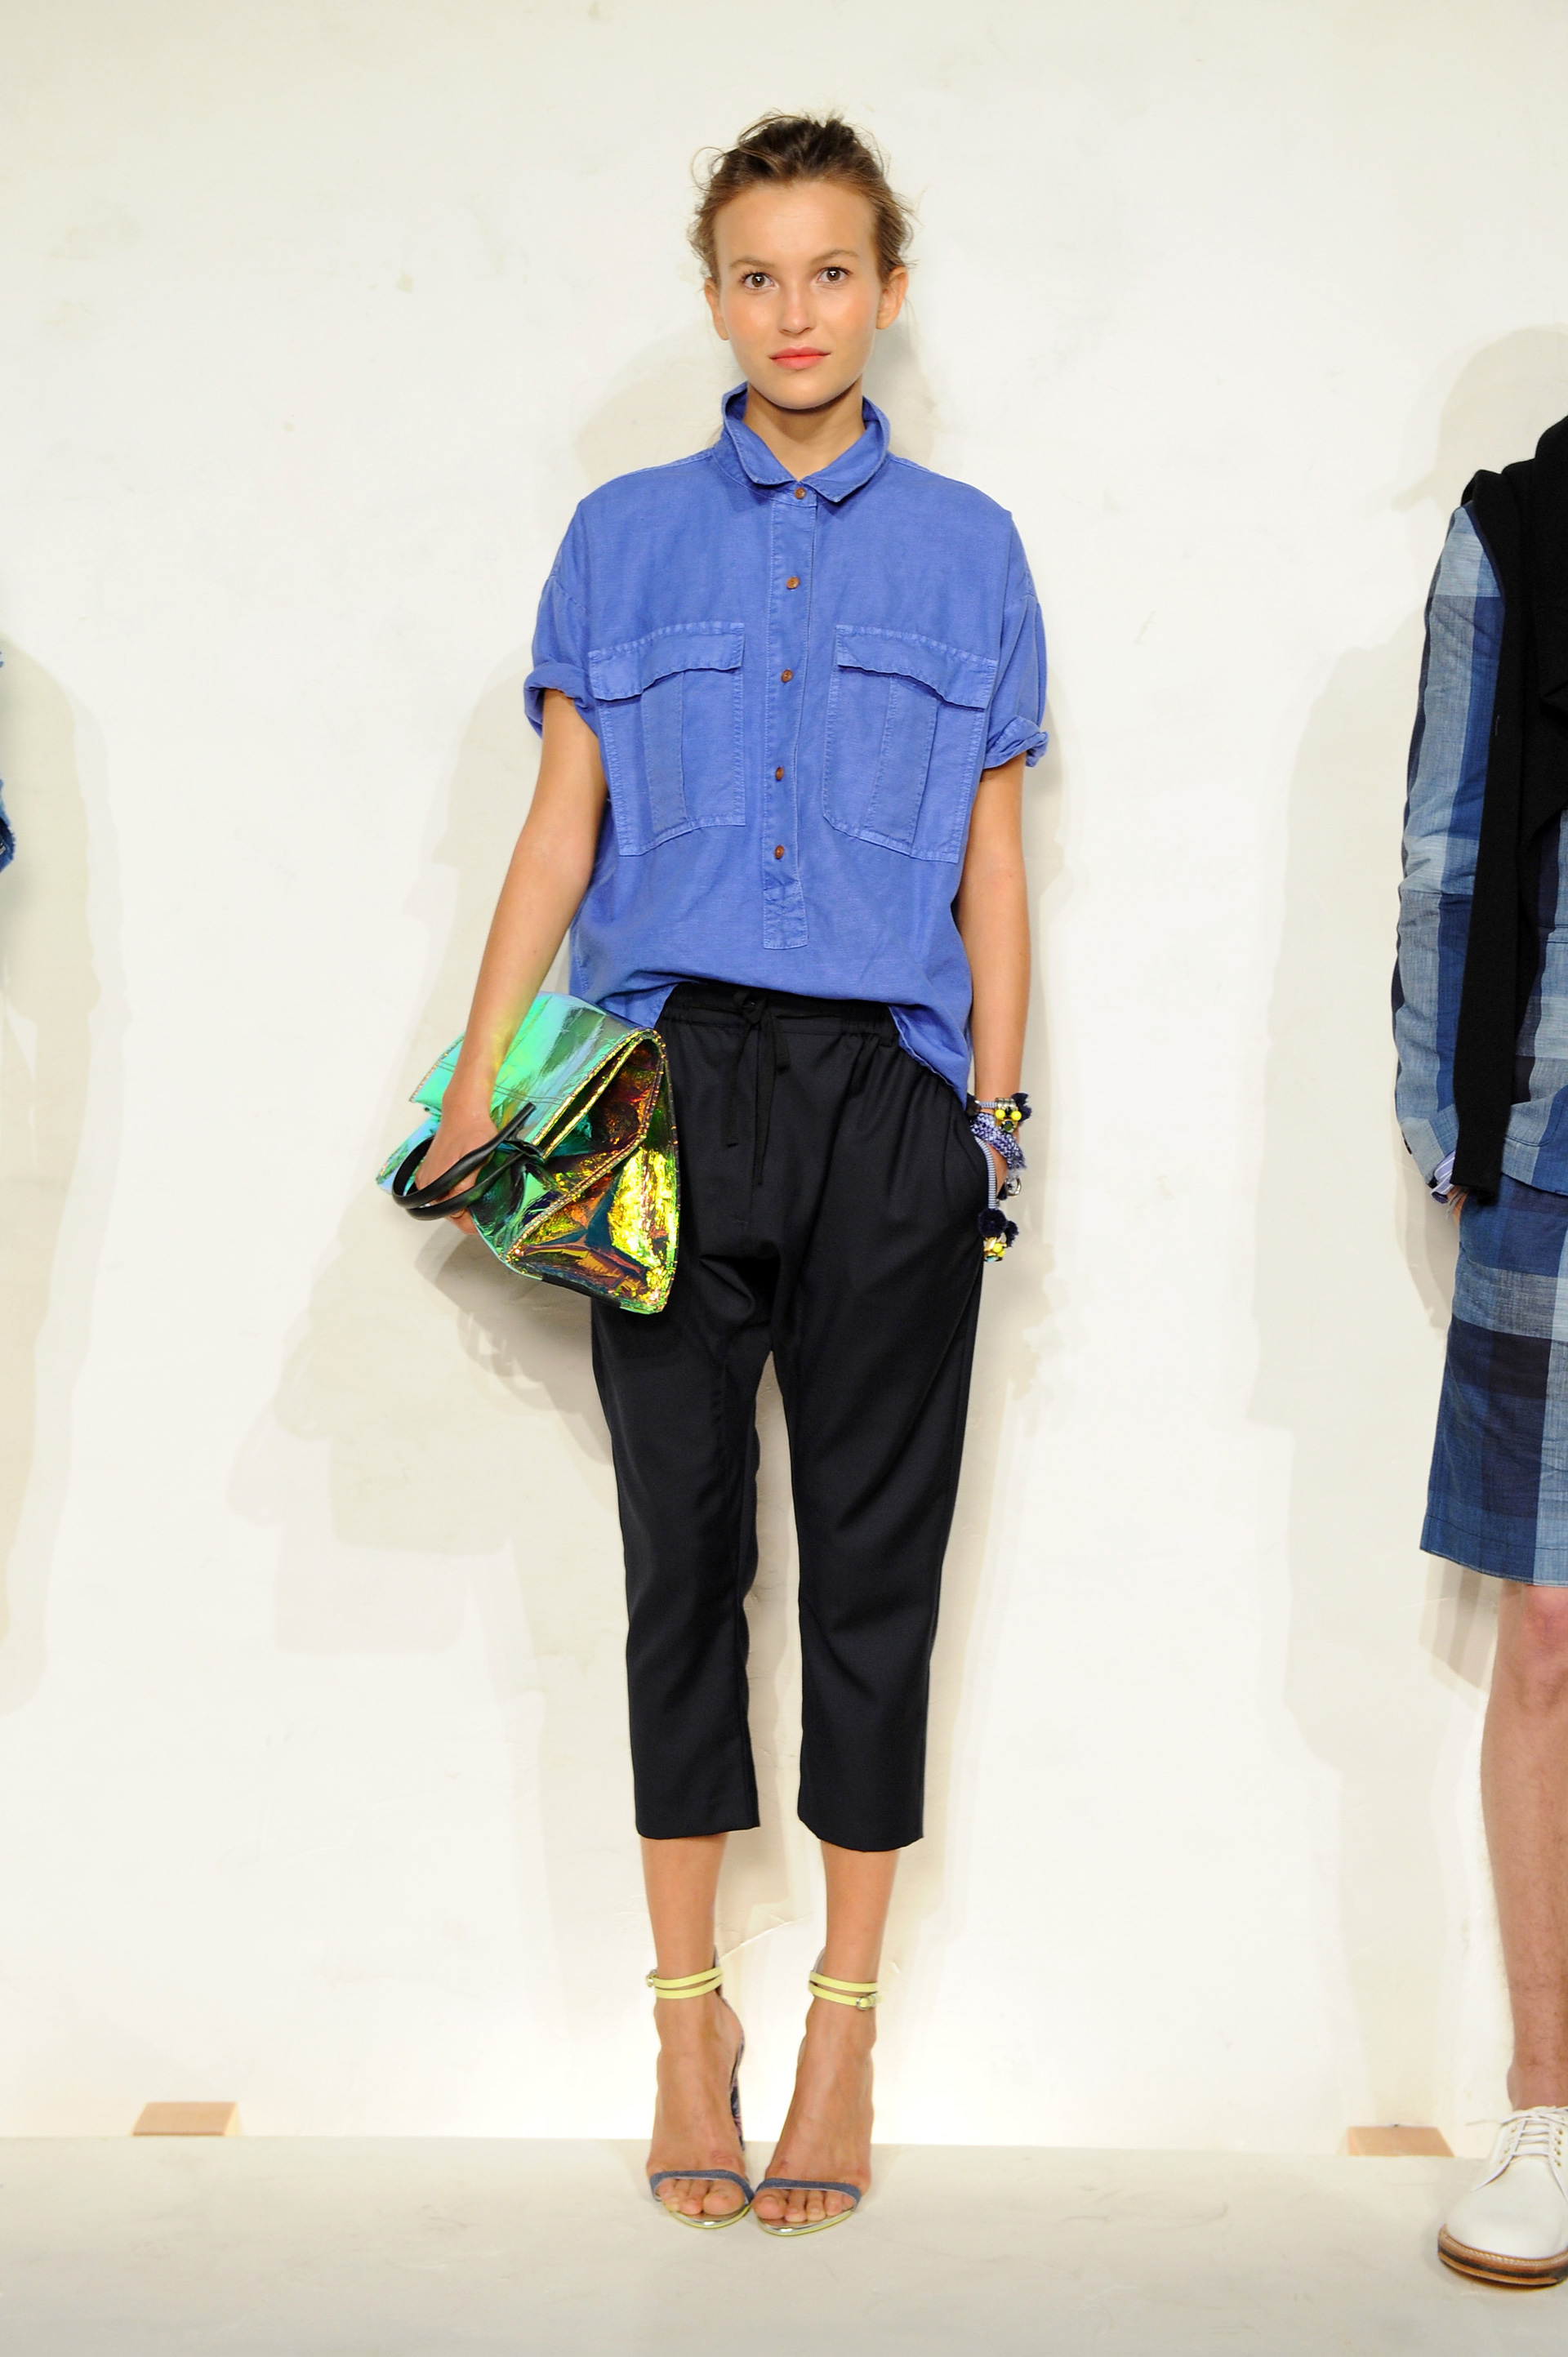 2015 J.Crew collection pieces 5